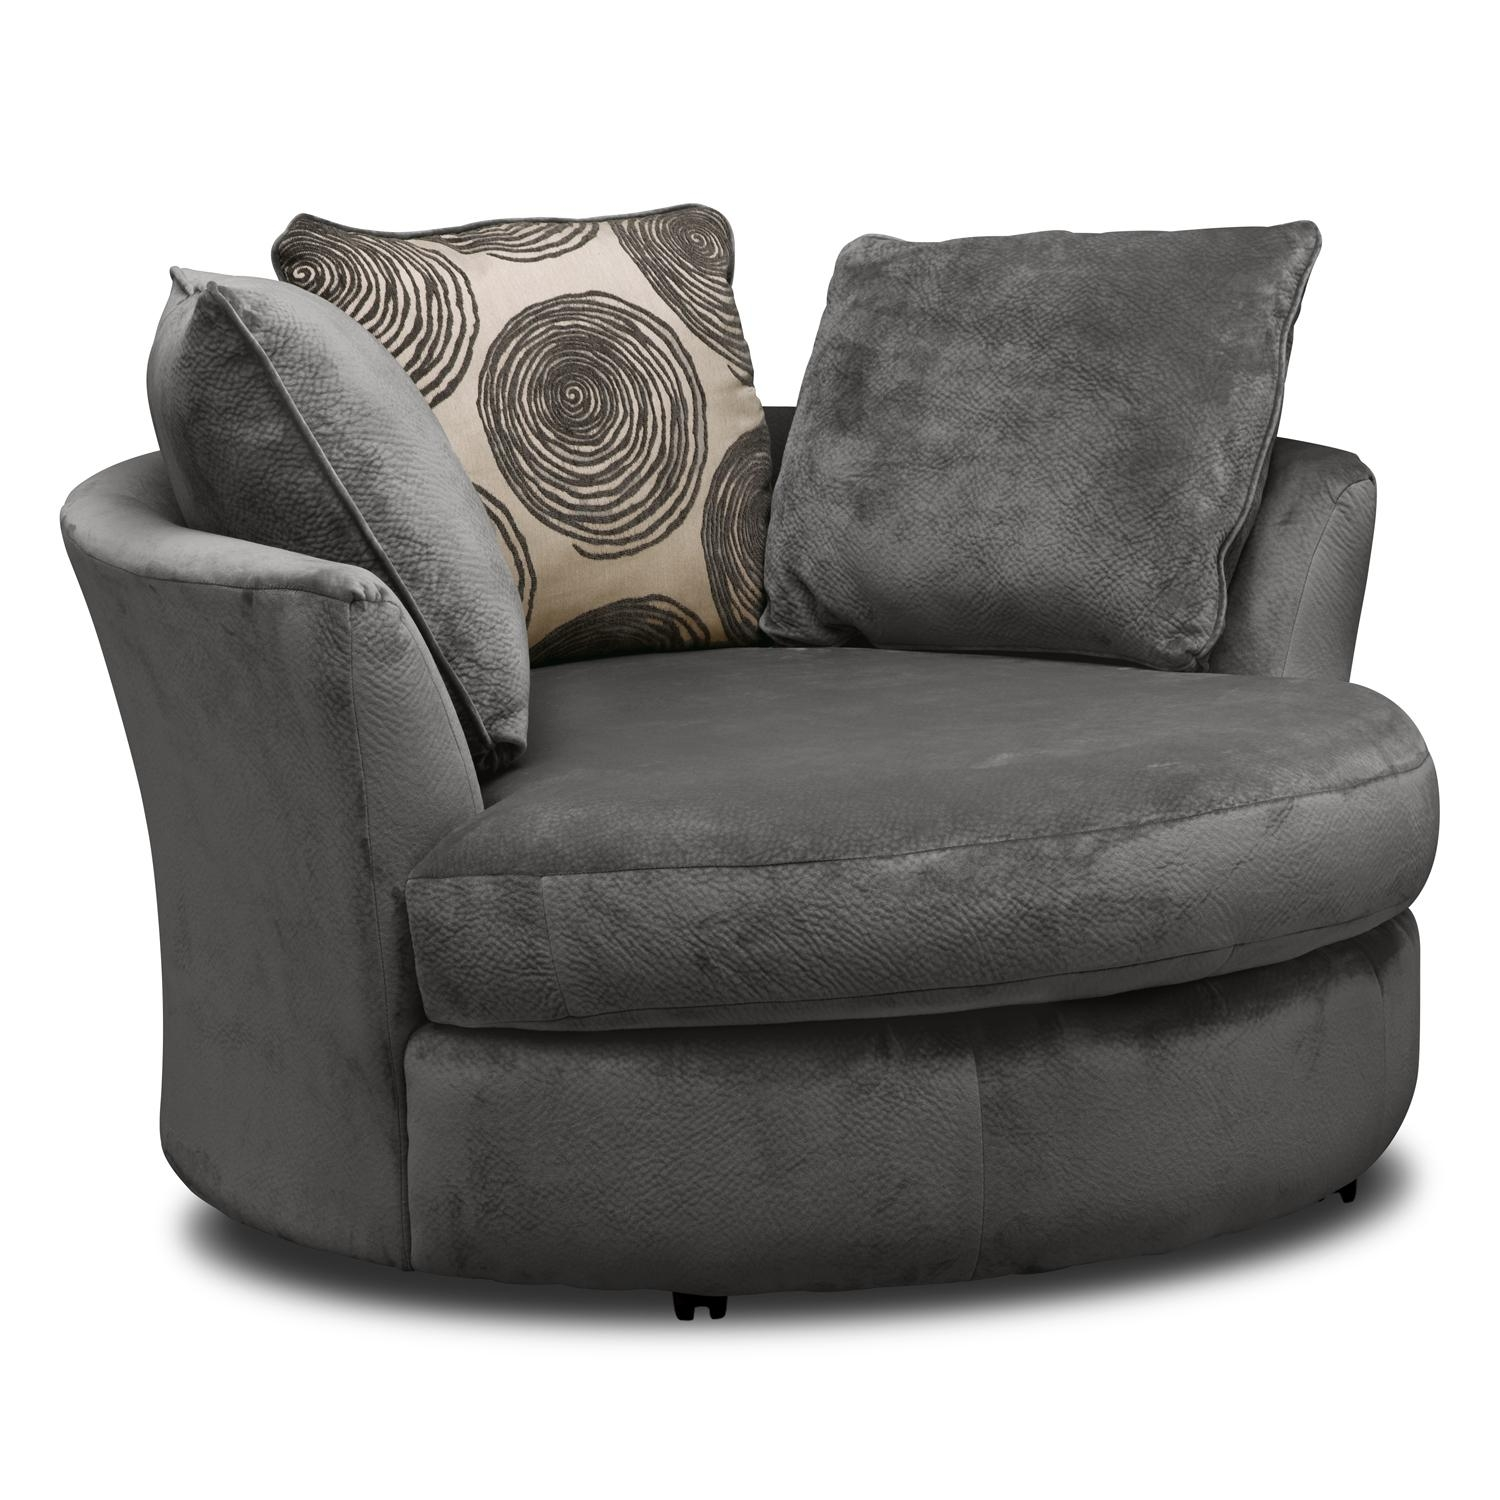 Oversized Sofa Chair 20 Ideas Of Large Sofa Chairs Sofa Ideas